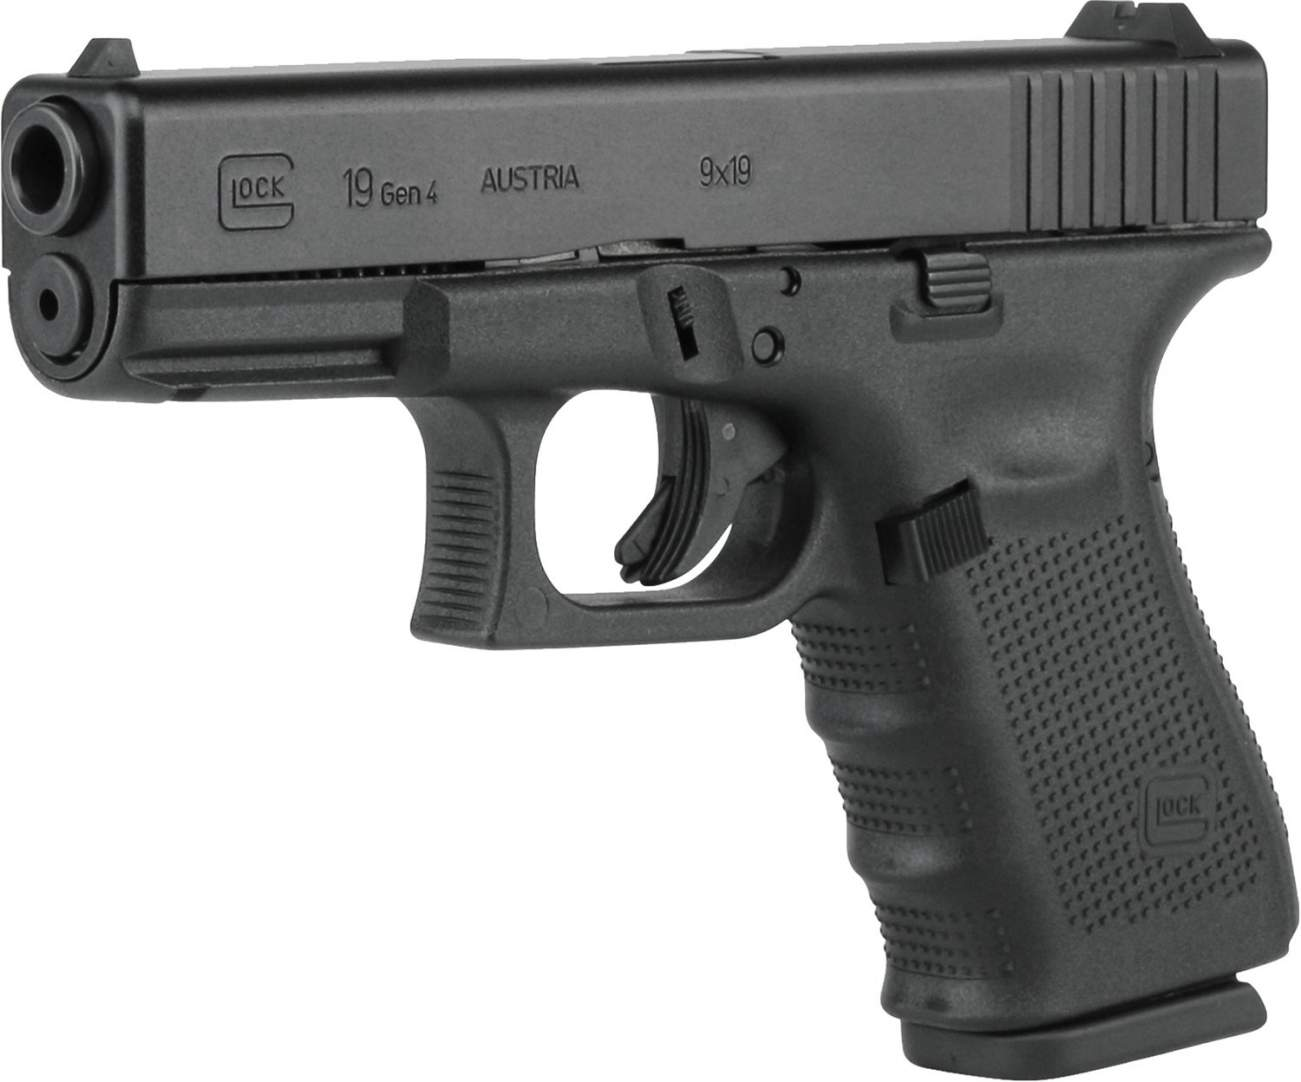 The World Has Many 9mm Handguns, But These 5 Are The Best of the Best